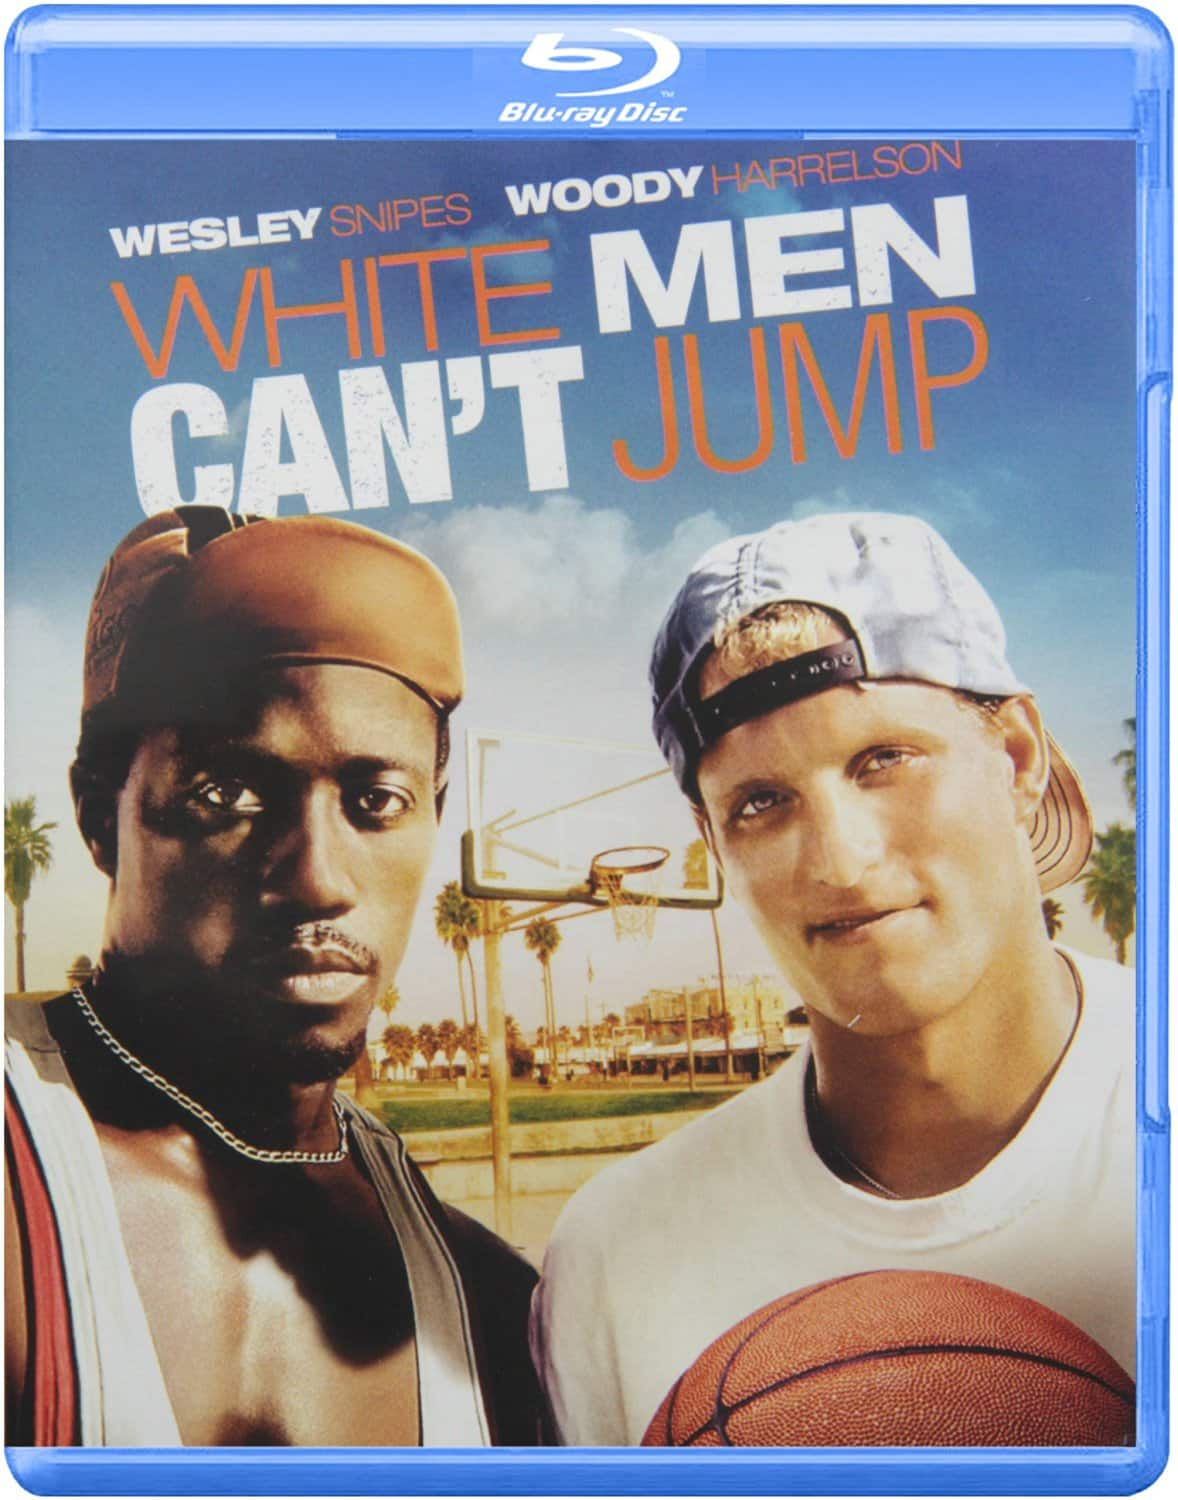 White Men Can't Jump (Blu-ray)  $6